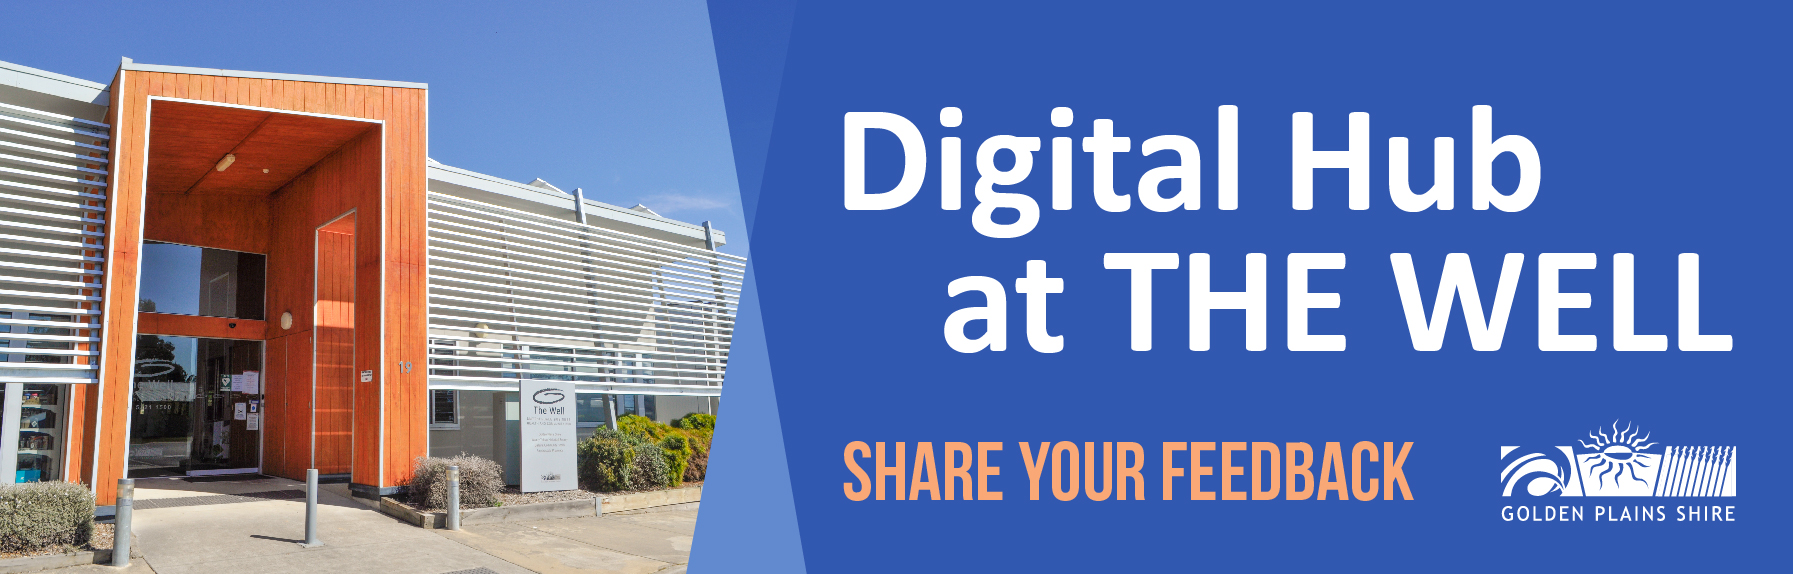 Digital Hub at The Well Golden Plains Shire Council